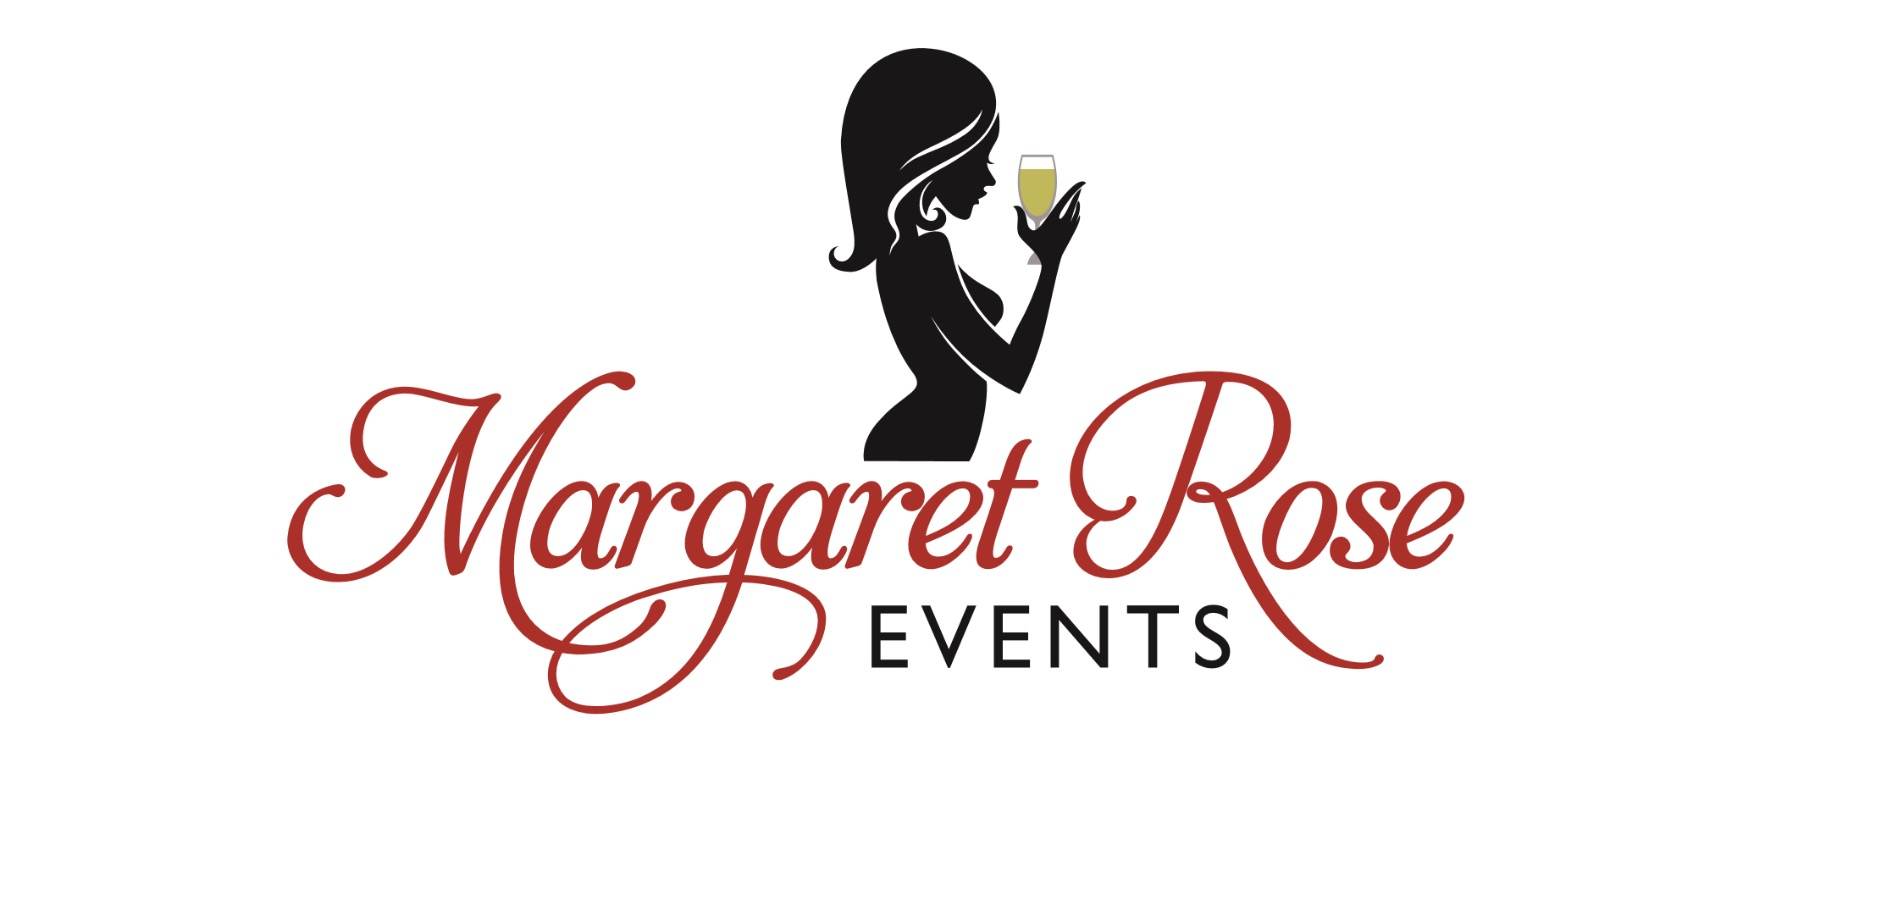 Margaret Rose Events logo